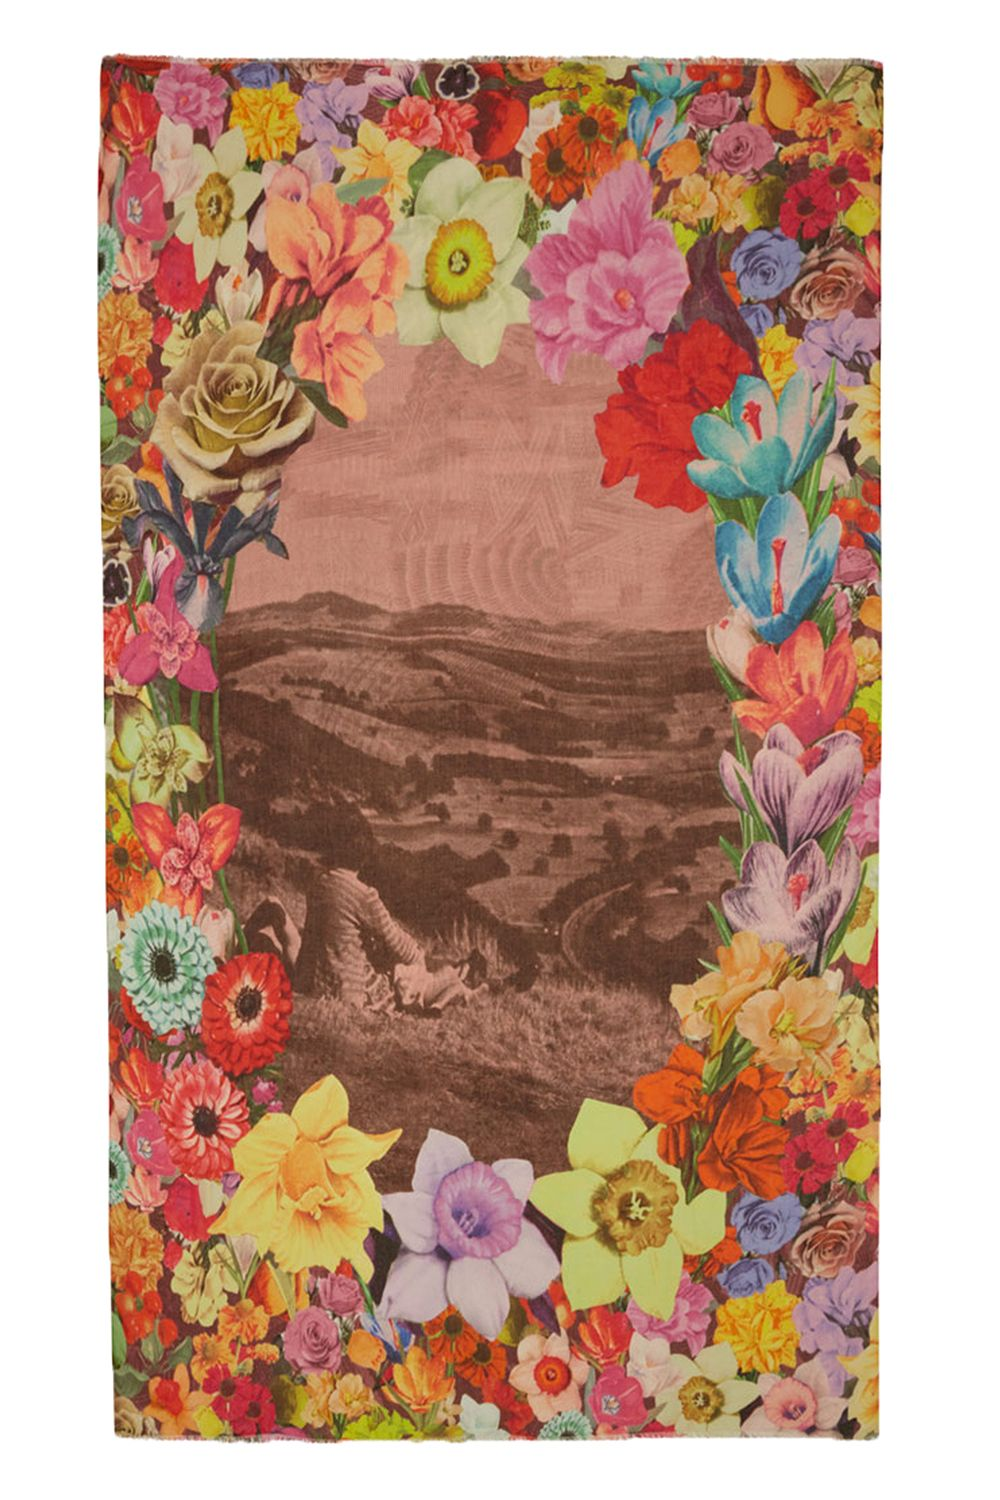 paul smith womens flower garland scarf - floral https://www.blueberries-online.com/womens-flower-garland-scarf-floral-by-paul-smith-acc-womens-accessories_p0011667000.html